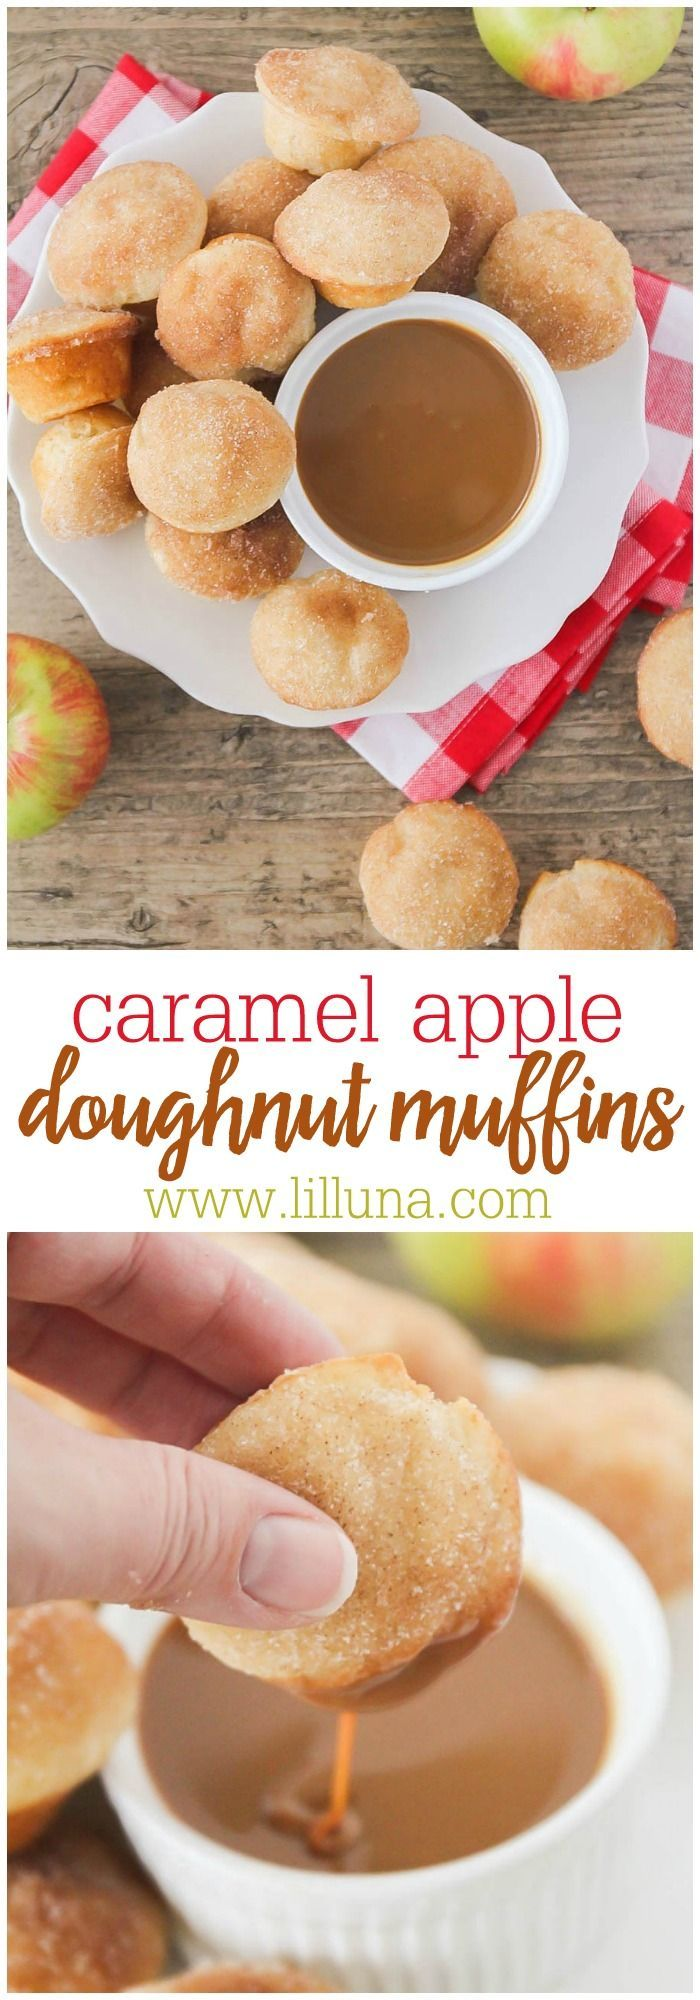 Caramel Apple Doughnut Muffins - The fresh apples in the batter make these muffins deliciously moist and tender, and the cinnamon sugar on top is the perfect complement!!